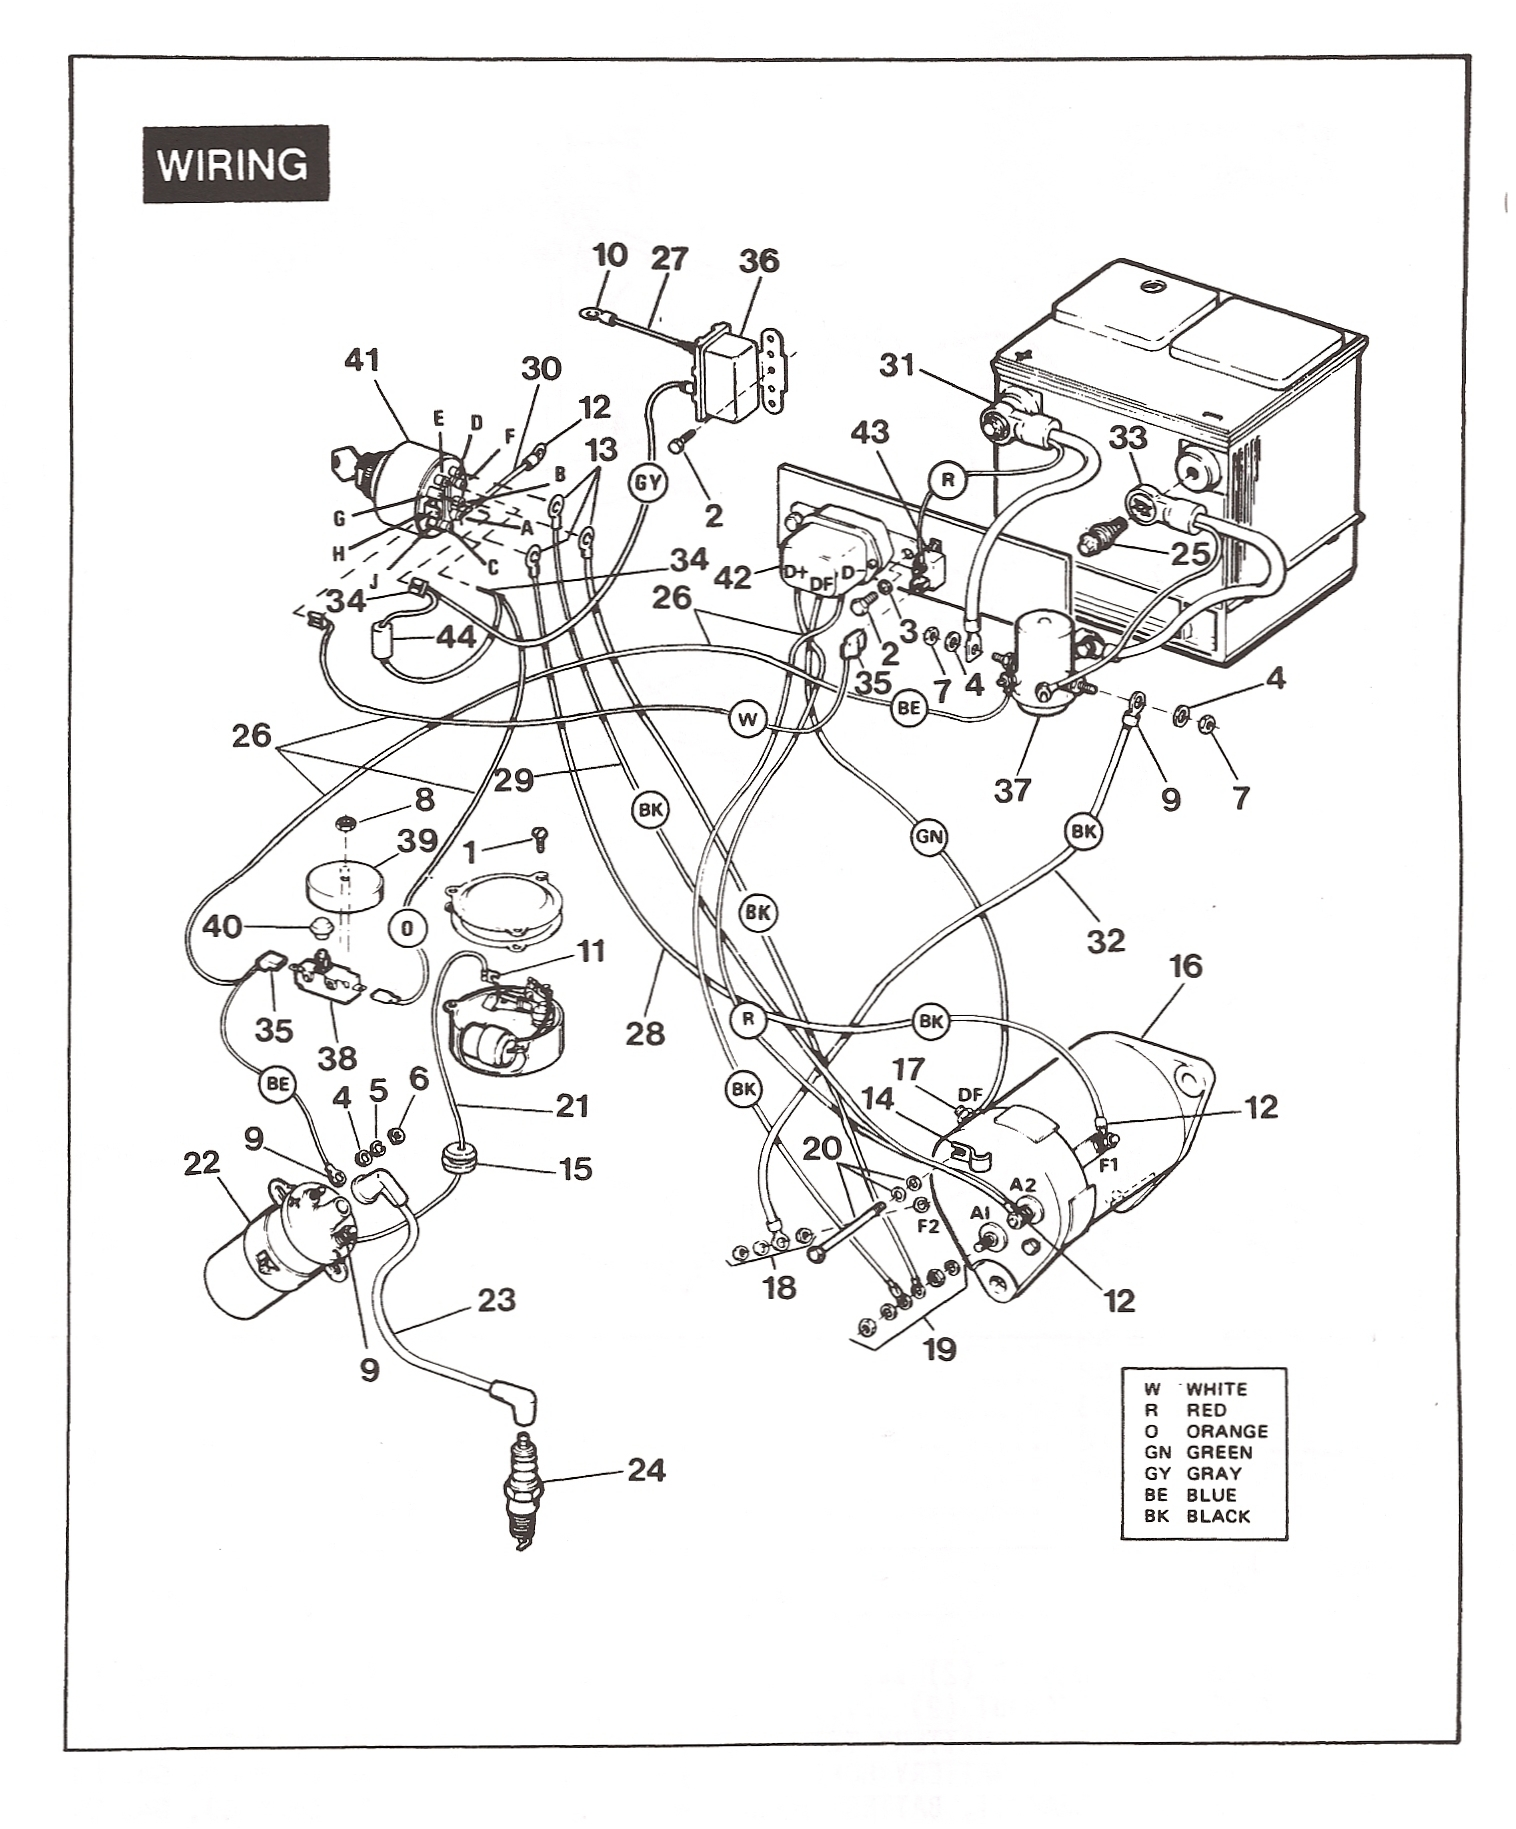 wiring diagram for harley davidson